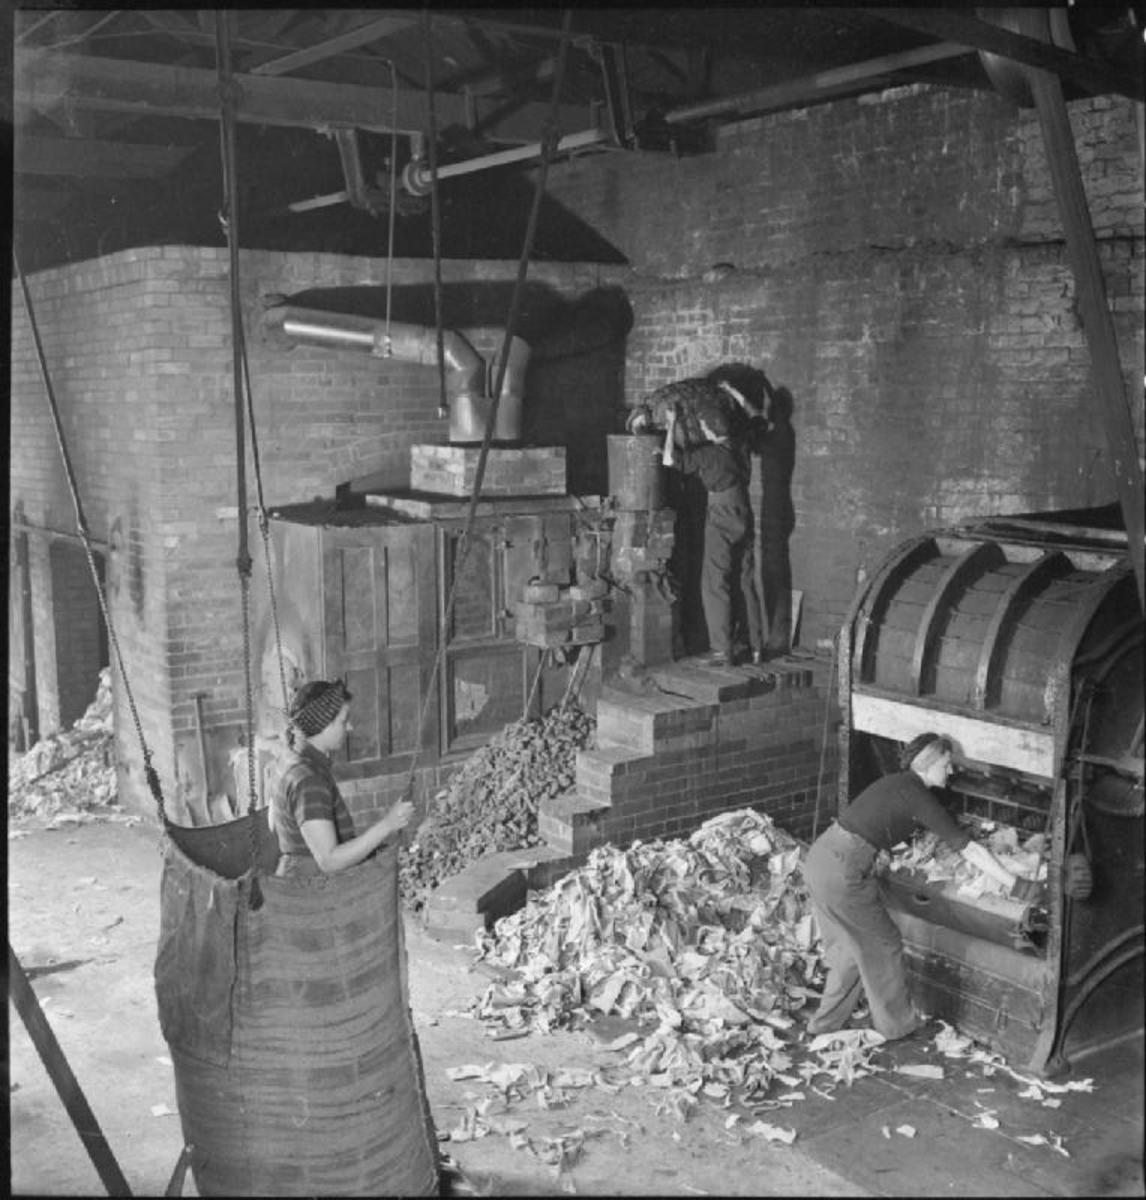 Old Rags Into New Cloth- Salvage in Britain, April 1942